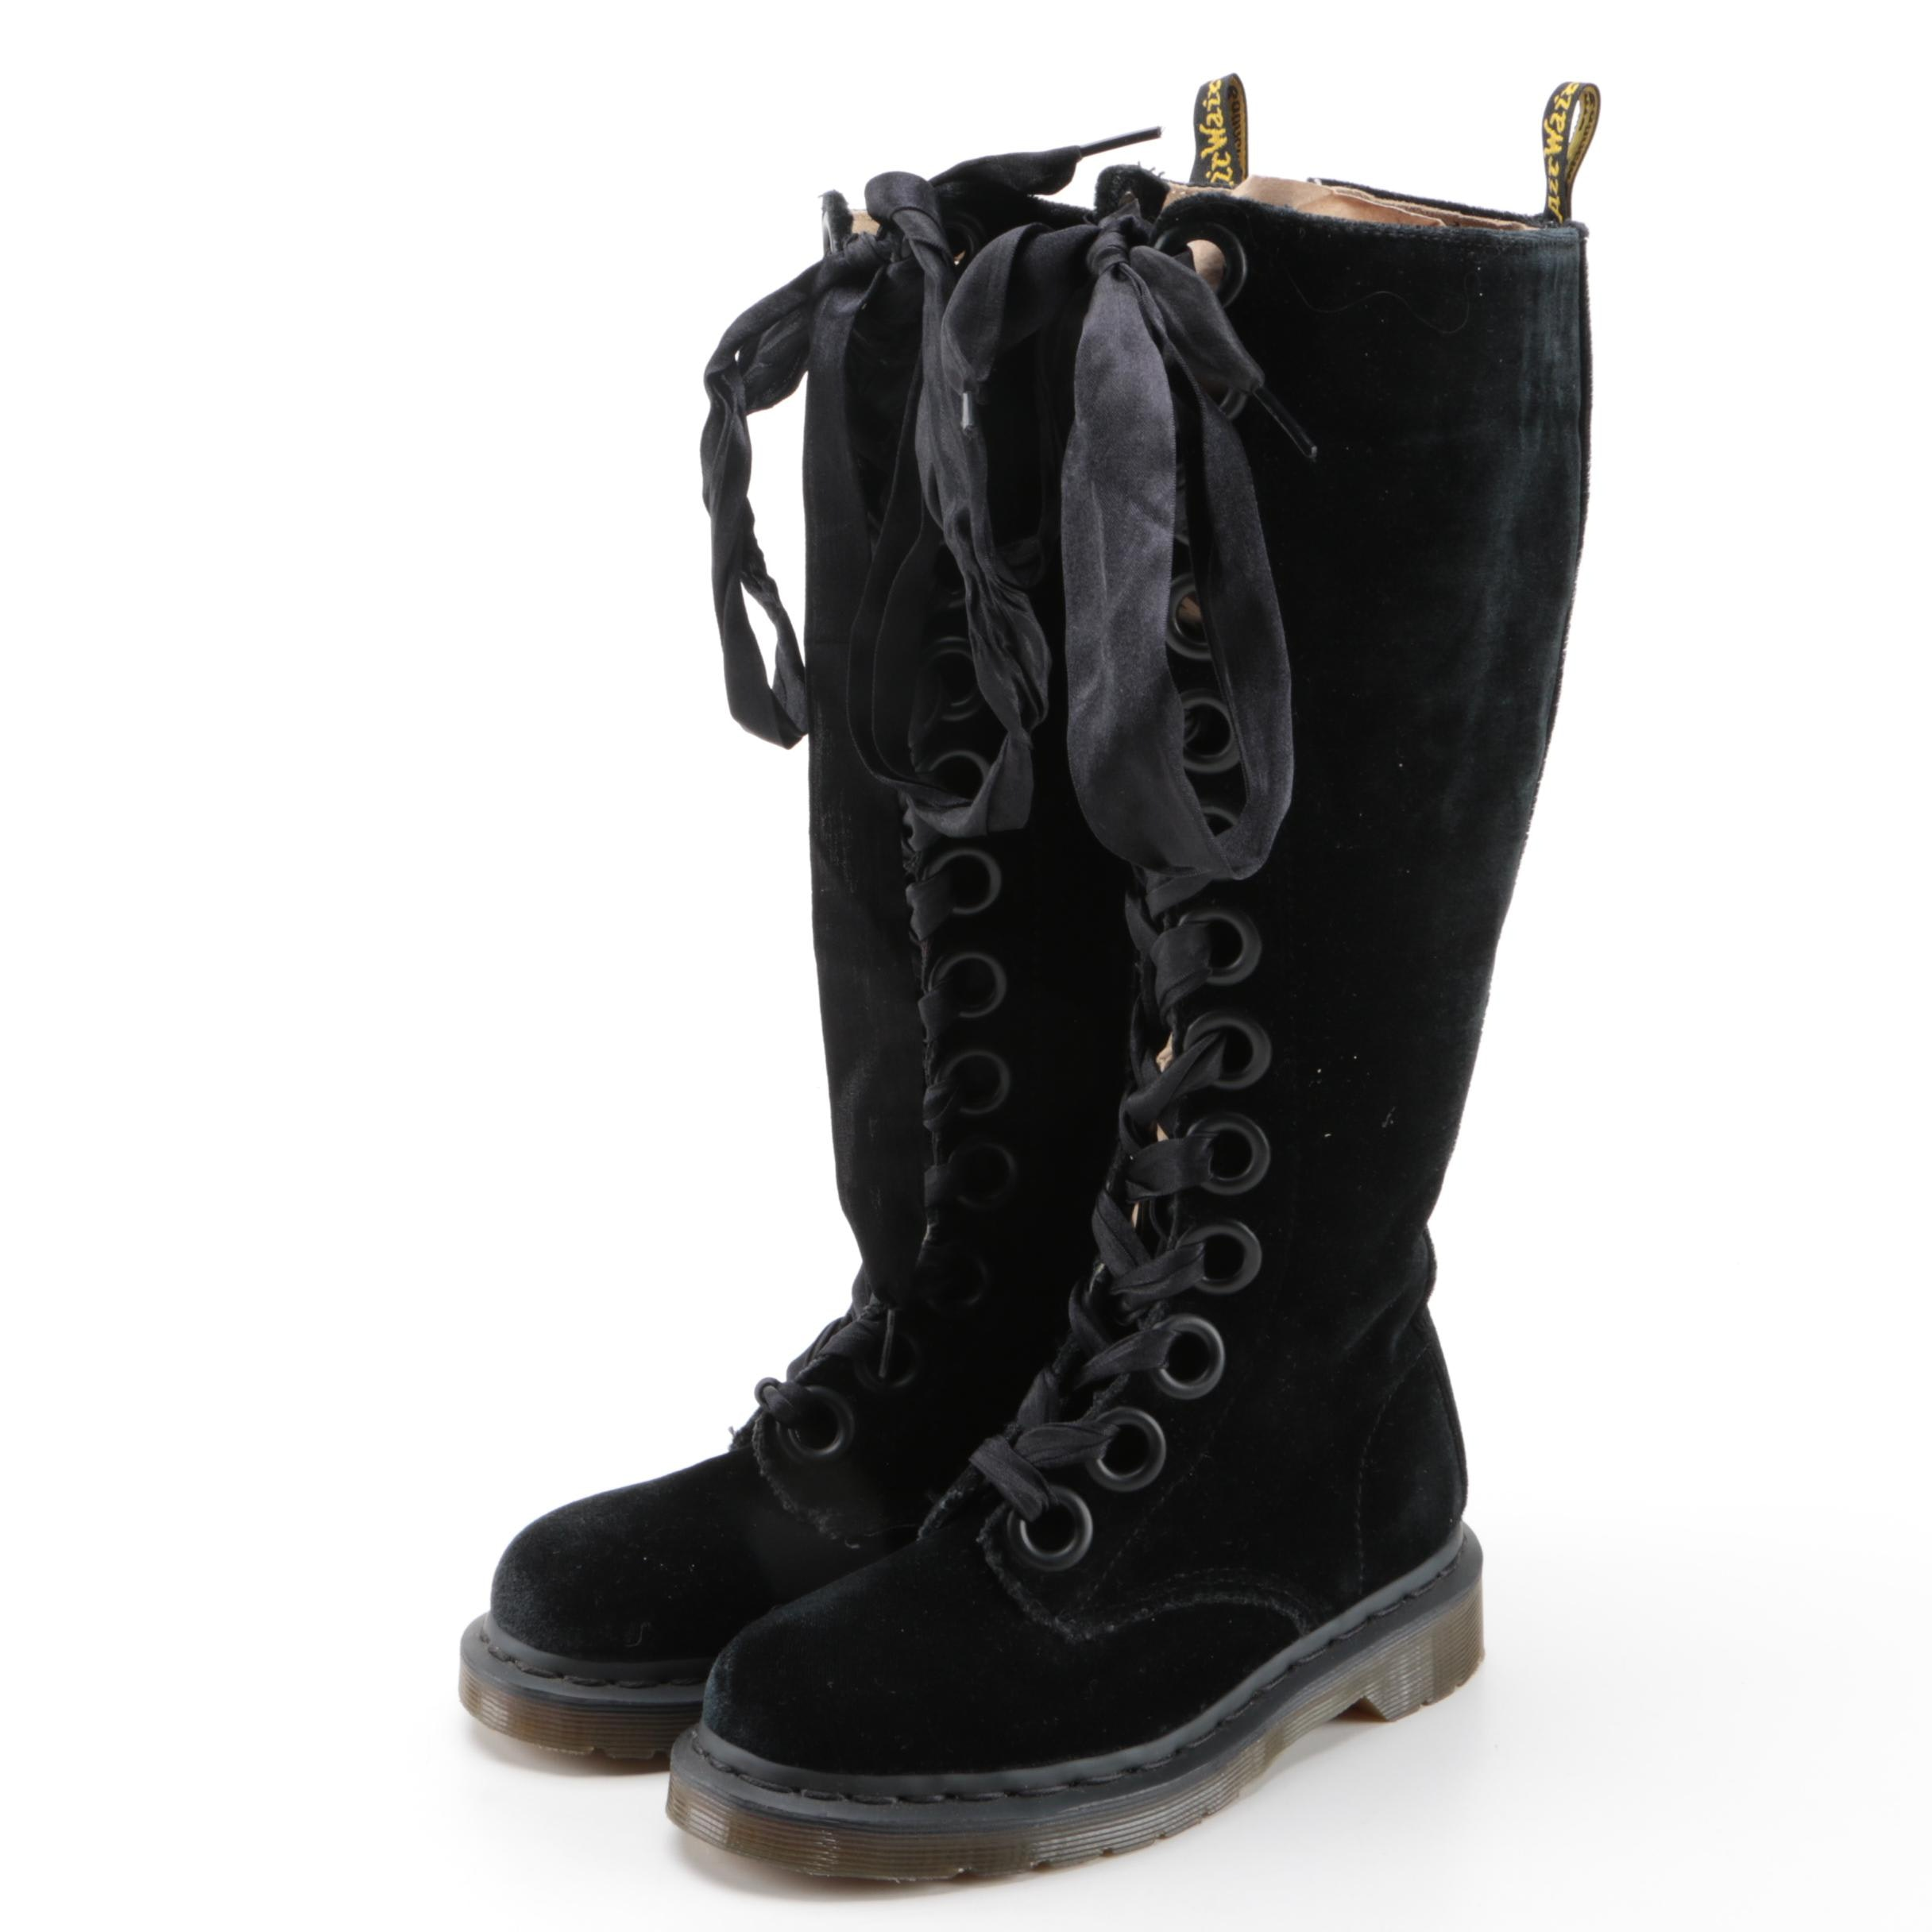 Dr. Martens Black Velveteen Knee-High Lace Up Boots